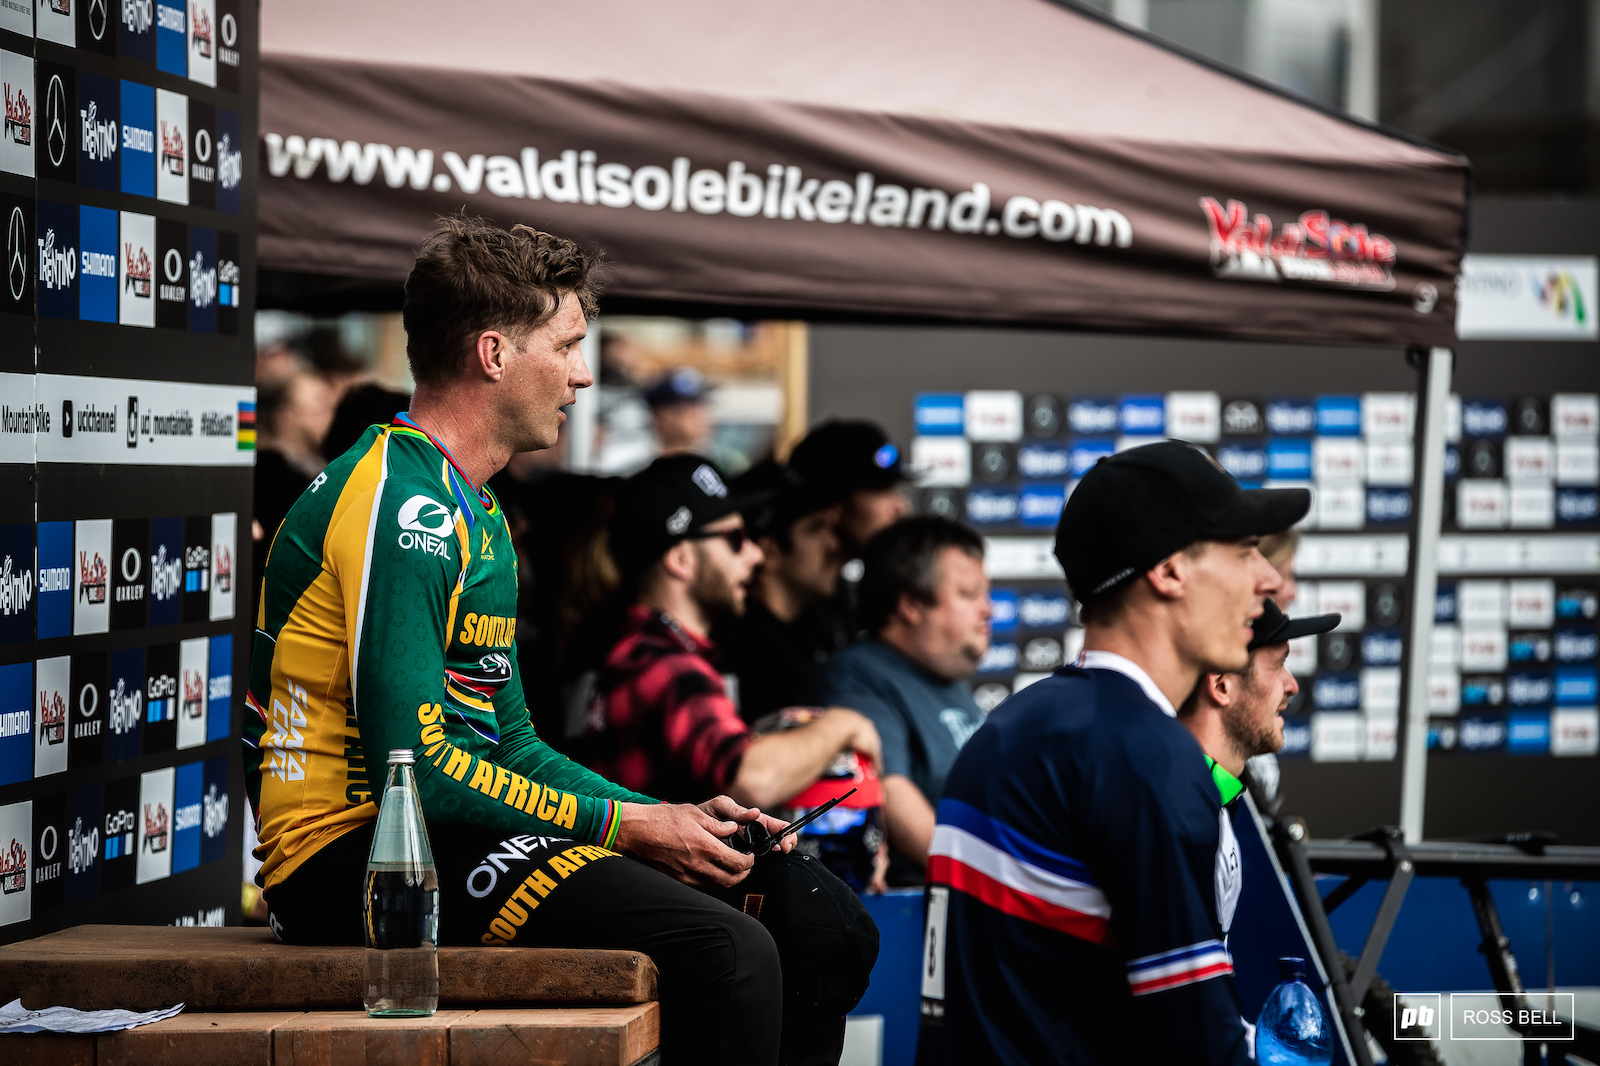 Nervous moments in the hot seat for Greg Minnaar as he watches the last few riders try to beat his time.